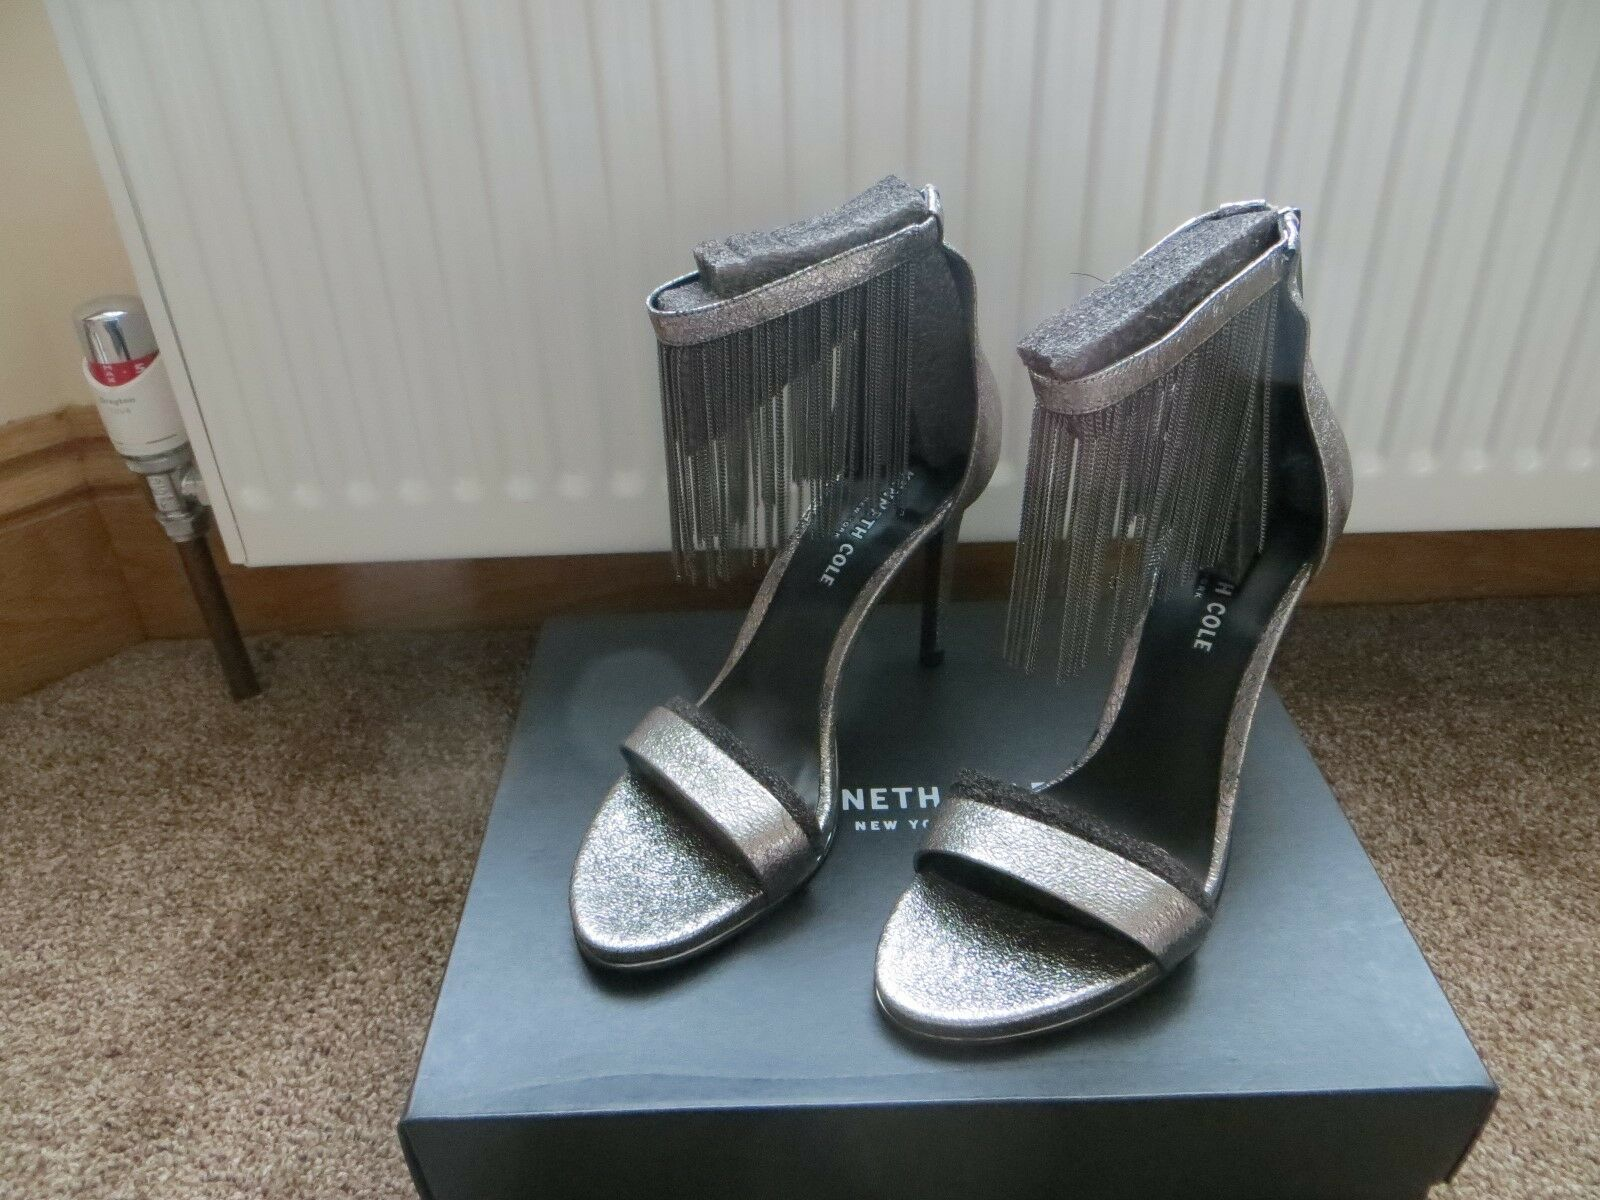 Bnib LADIES Taille 7 EU 40 100% LEATHER SANDALS BY KENNETH COLE NEW YORK